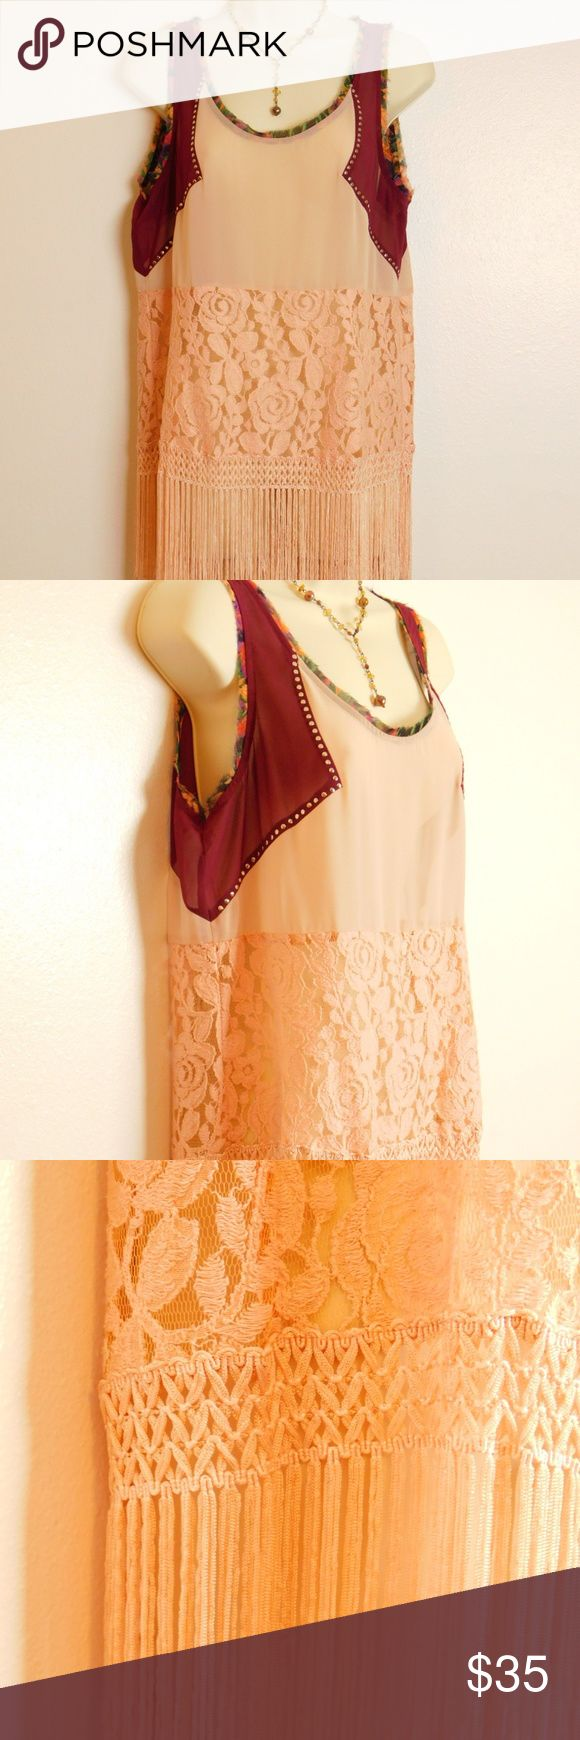 """Buckle Lace Fringe Studded Chiffon Boho Blouse M """"Gimmicks by BKE Buckle"""" embellished boho fringed hem blouse Women's size Medium M(8/10) Color:  Peach Burgundy Orange Green Length 28"""" shoulder to fringe hem, Bust 19"""" across EUC excellent pre-owned conditions, LOOKS ALMOST NEW  Pullover with scoop neckline Keyhole with single button closure at neck Silver studded chiffon bodice applique Lace panel with fringed hem Not lined  Fabric & Care Self 100% polyester Contrast 60% cotton, 40% rayon…"""